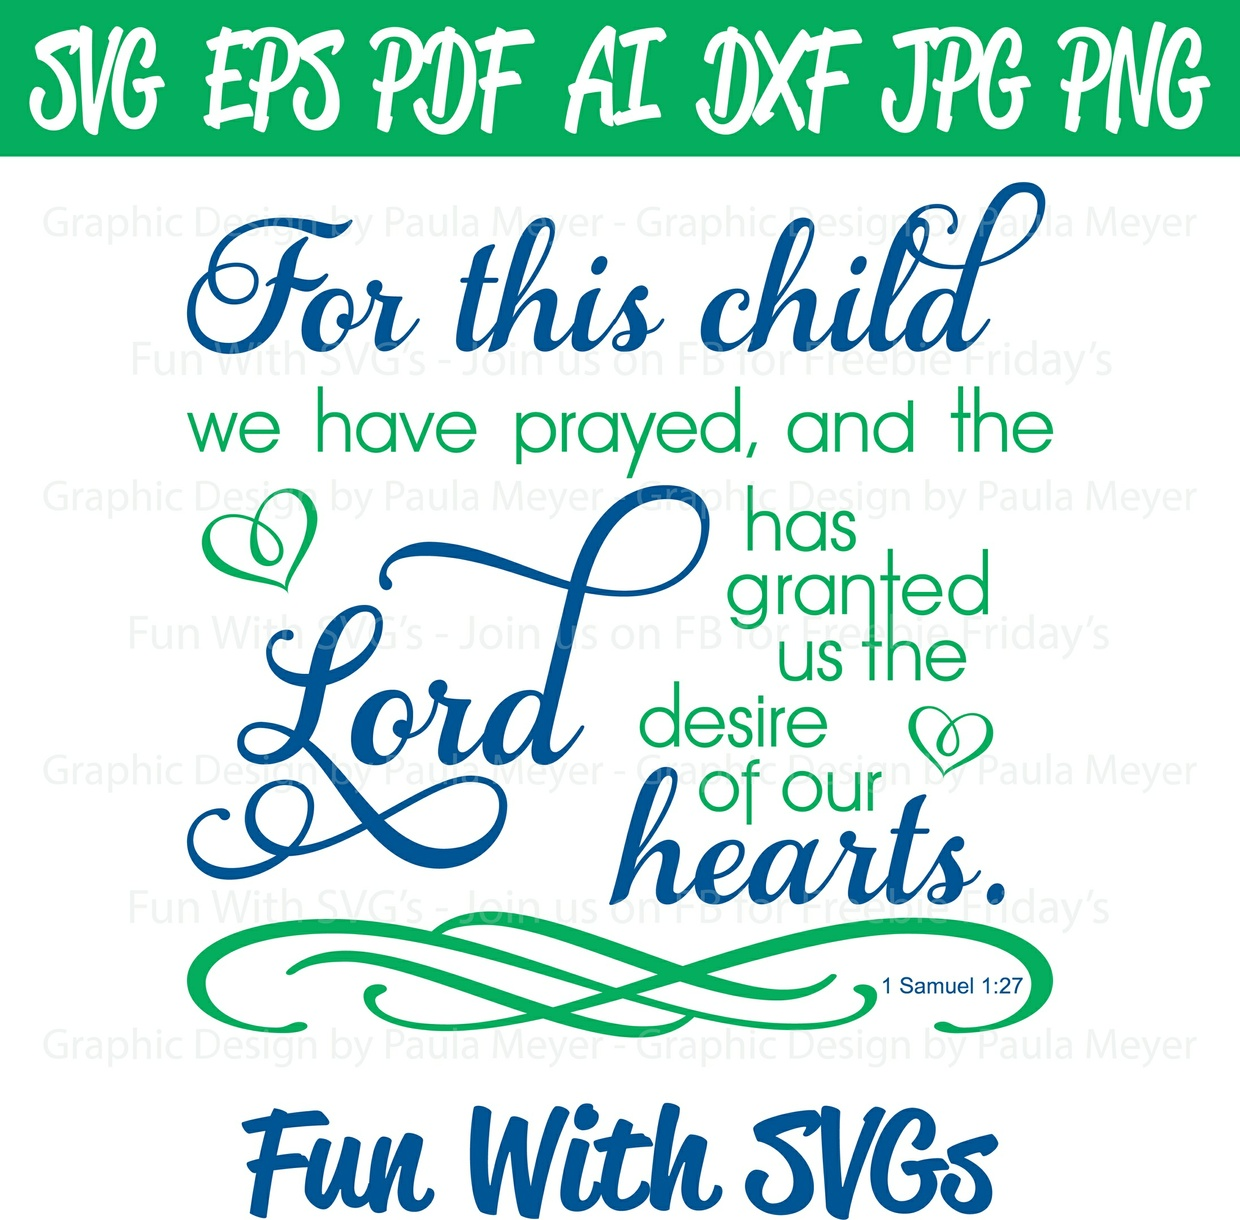 For This Child We Have Prayed - SVG Cut File, High Res Printable Graphics and Editable Vector Art